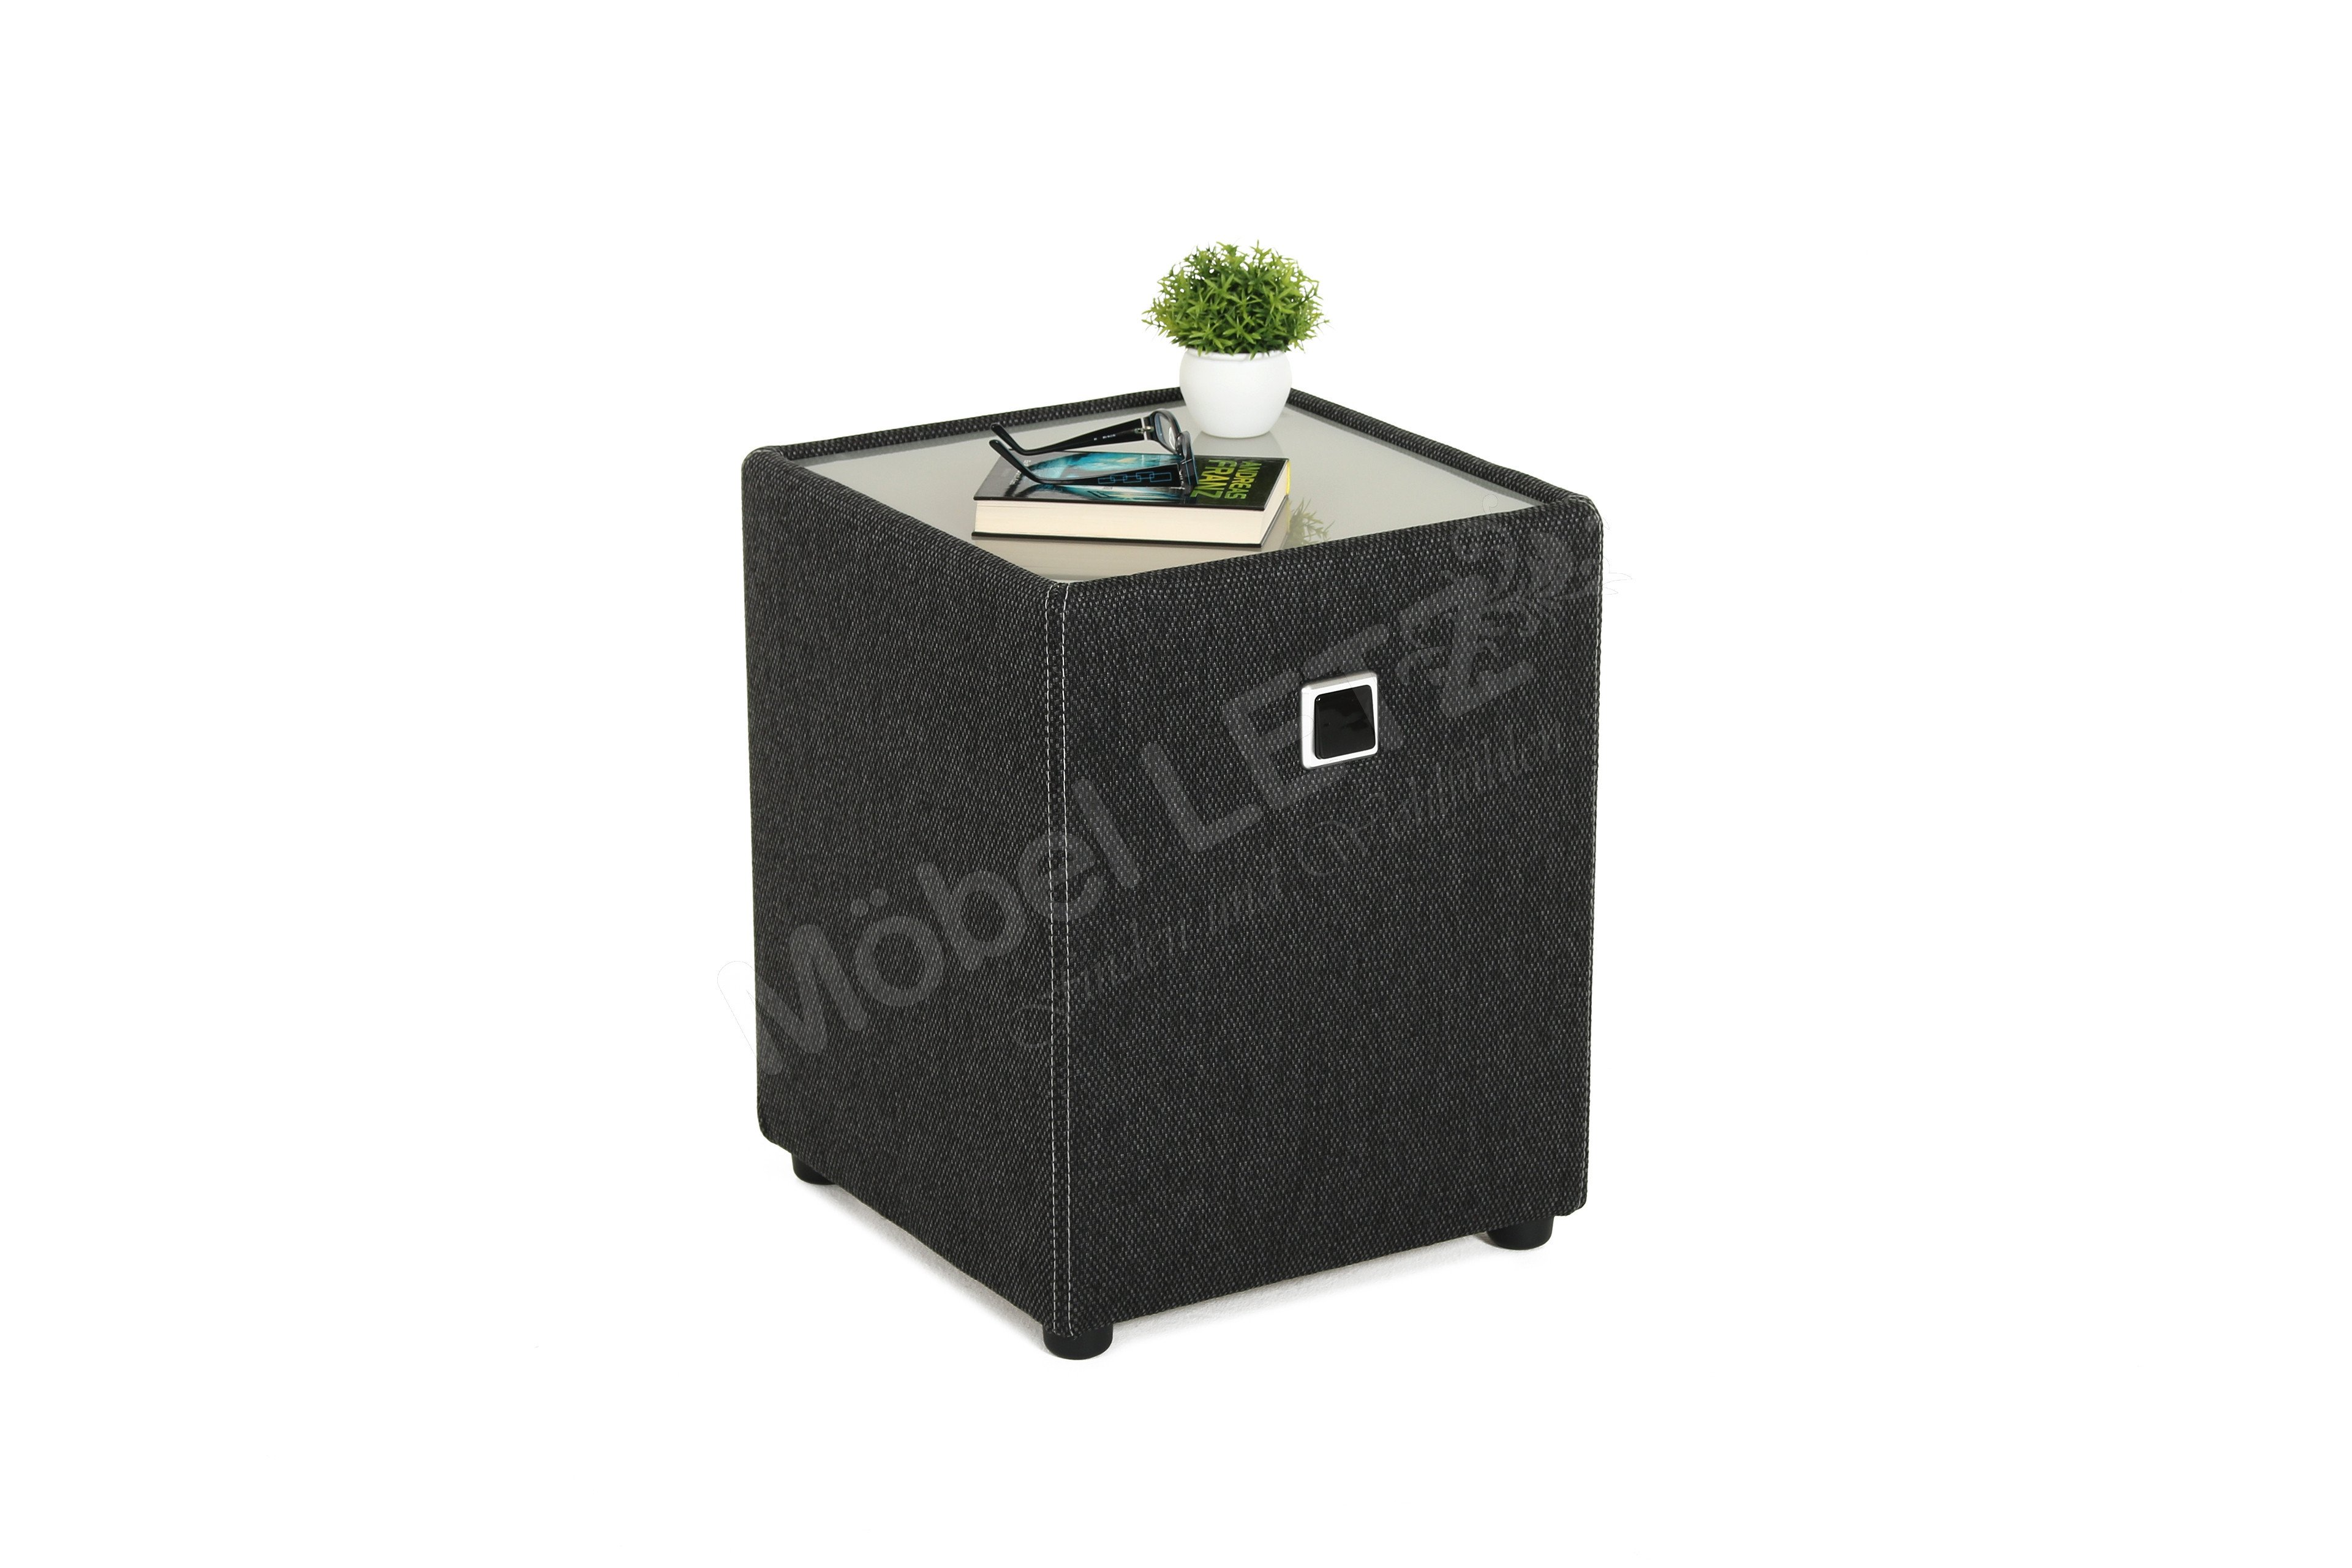 jockenh fer lightness nachtkonsole in schwarz mit beleuchtung m bel letz ihr online shop. Black Bedroom Furniture Sets. Home Design Ideas